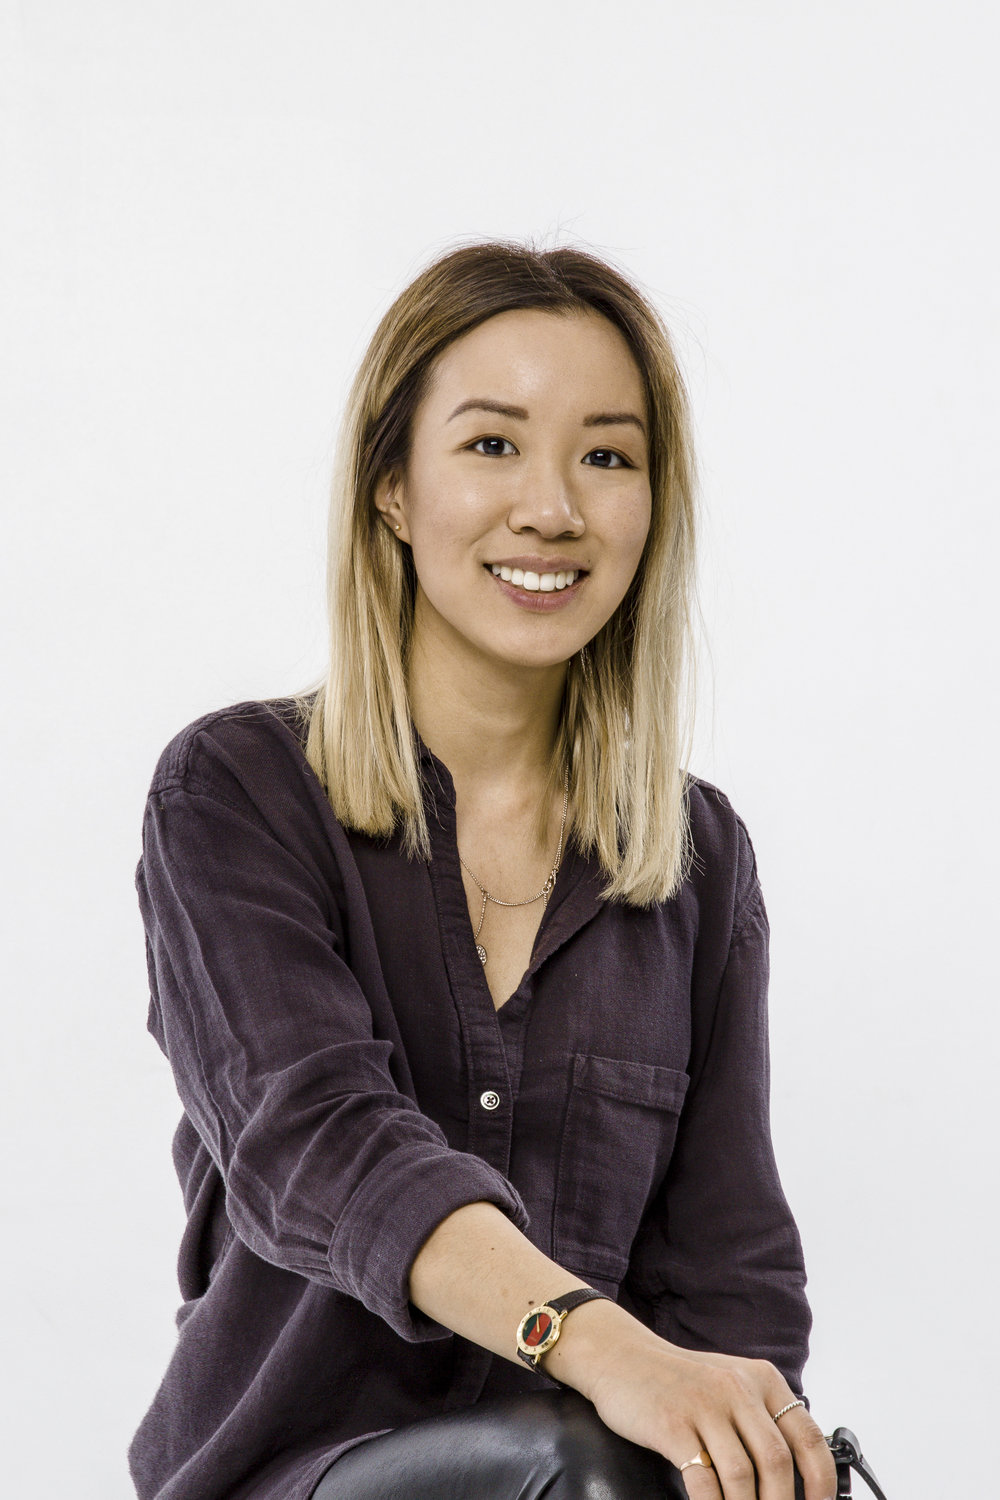 MEETCatherine Ong - My mission is to bring your ideas to life visually and documenting the journey .I have a keen eye for details and obsessed with aesthetics.